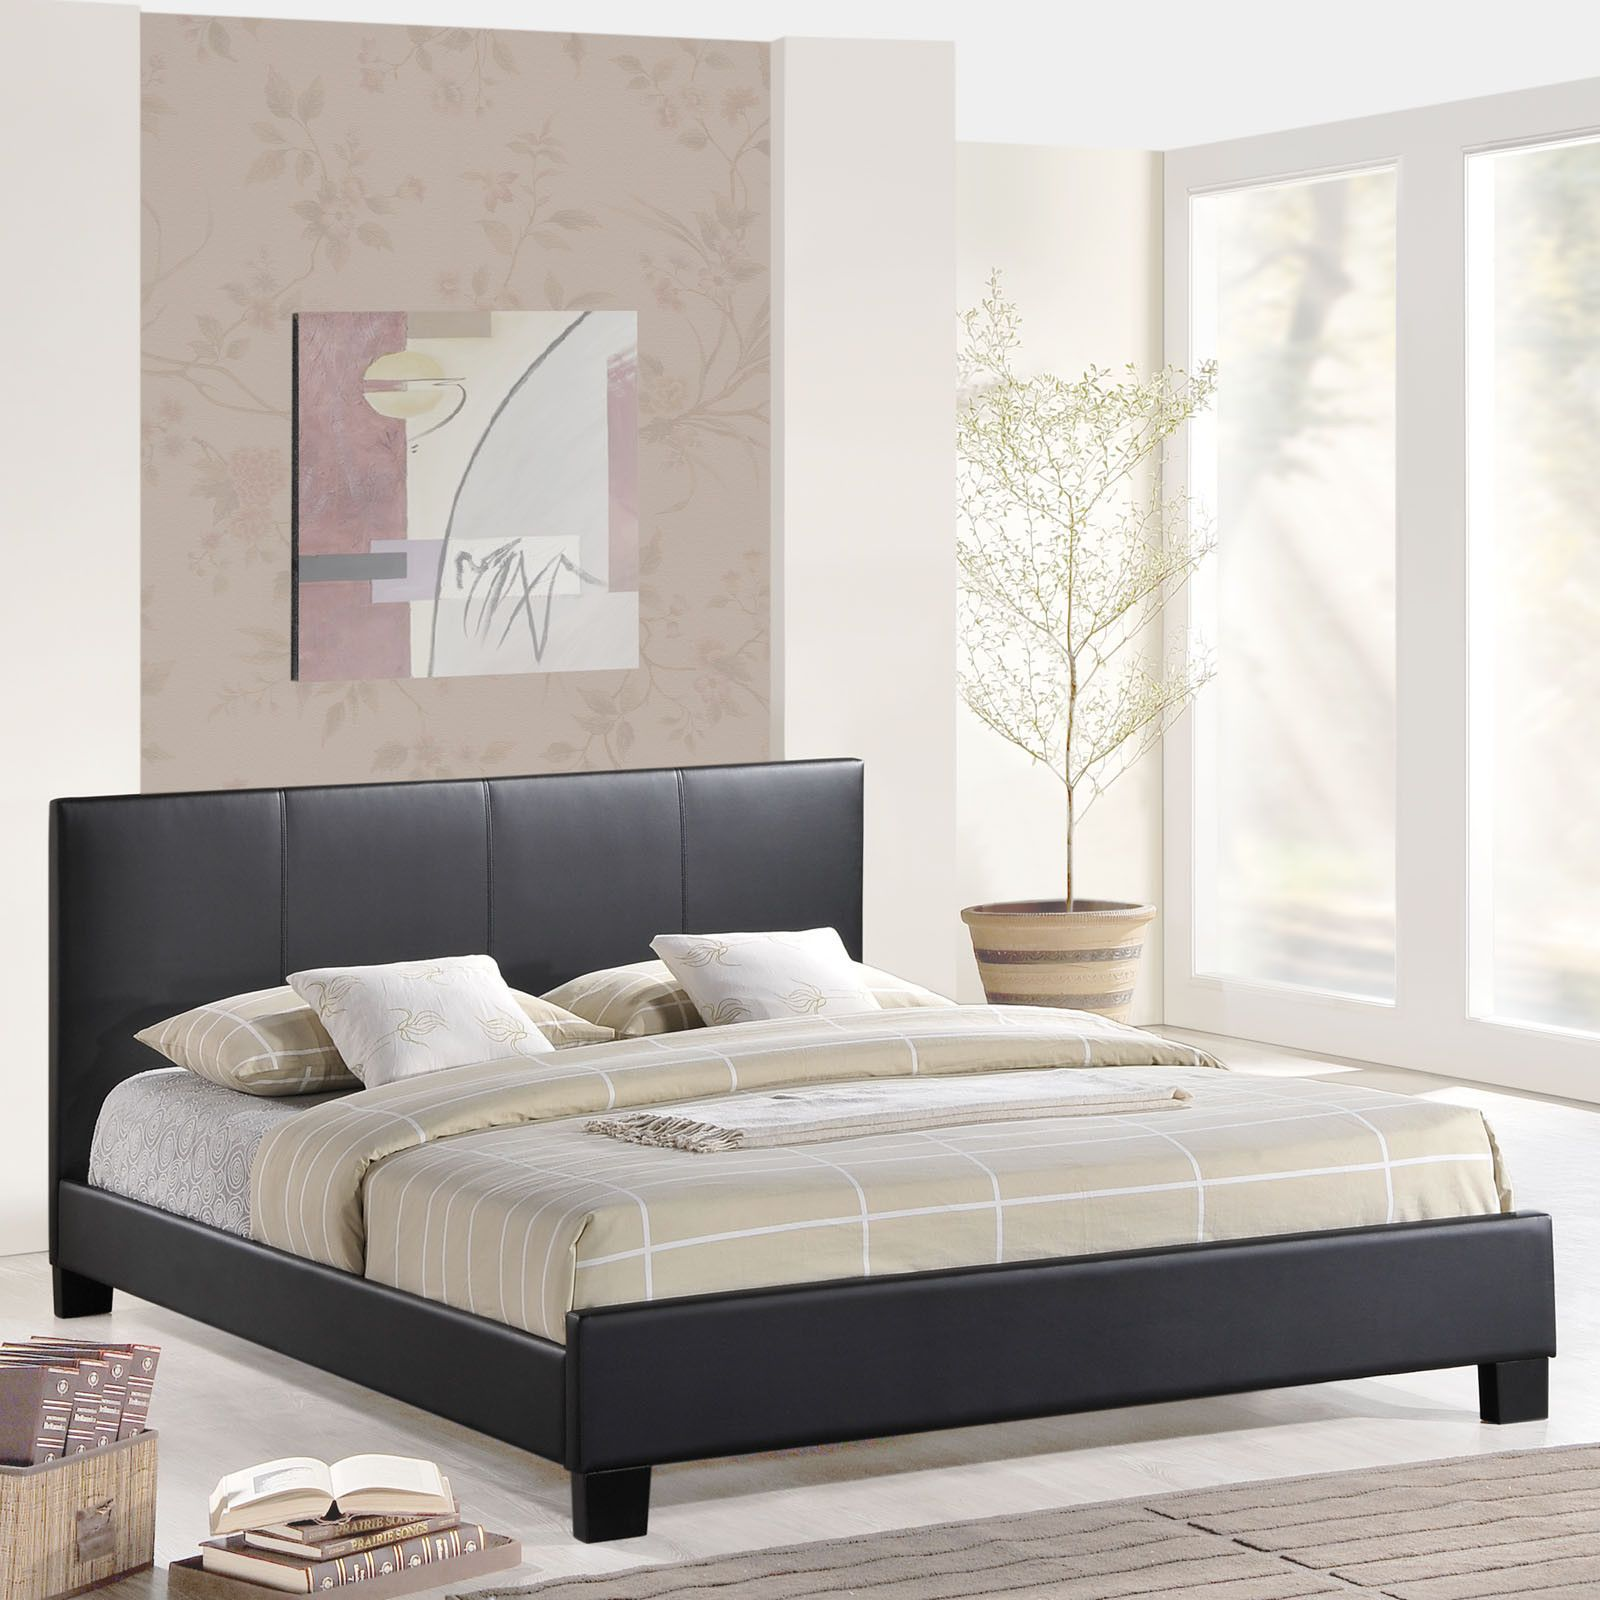 Modway Alex Full Vinyl Bed Frame Modish Store Queen Size Bed